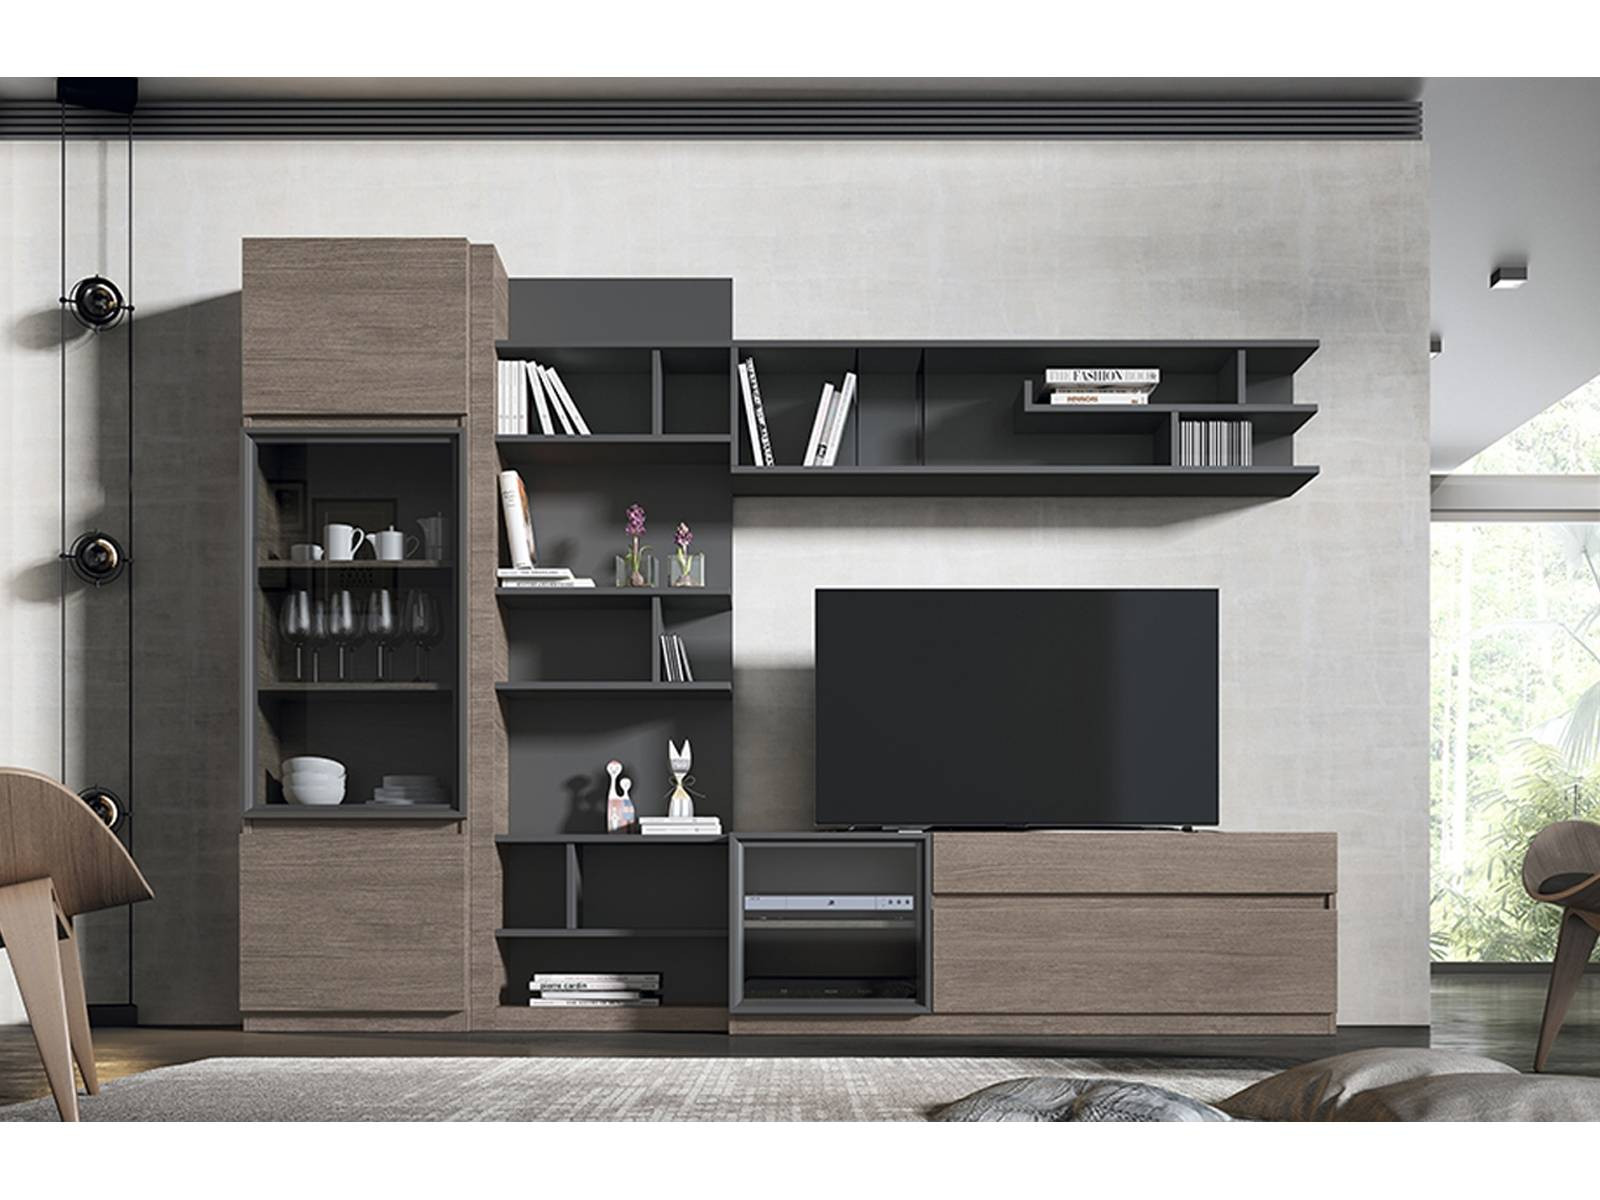 Mueble Salon Blanco Y Roble Brillante Muebles Roble Gris – Vangion Of 47  atractivo Mueble Salon Blanco Y Roble